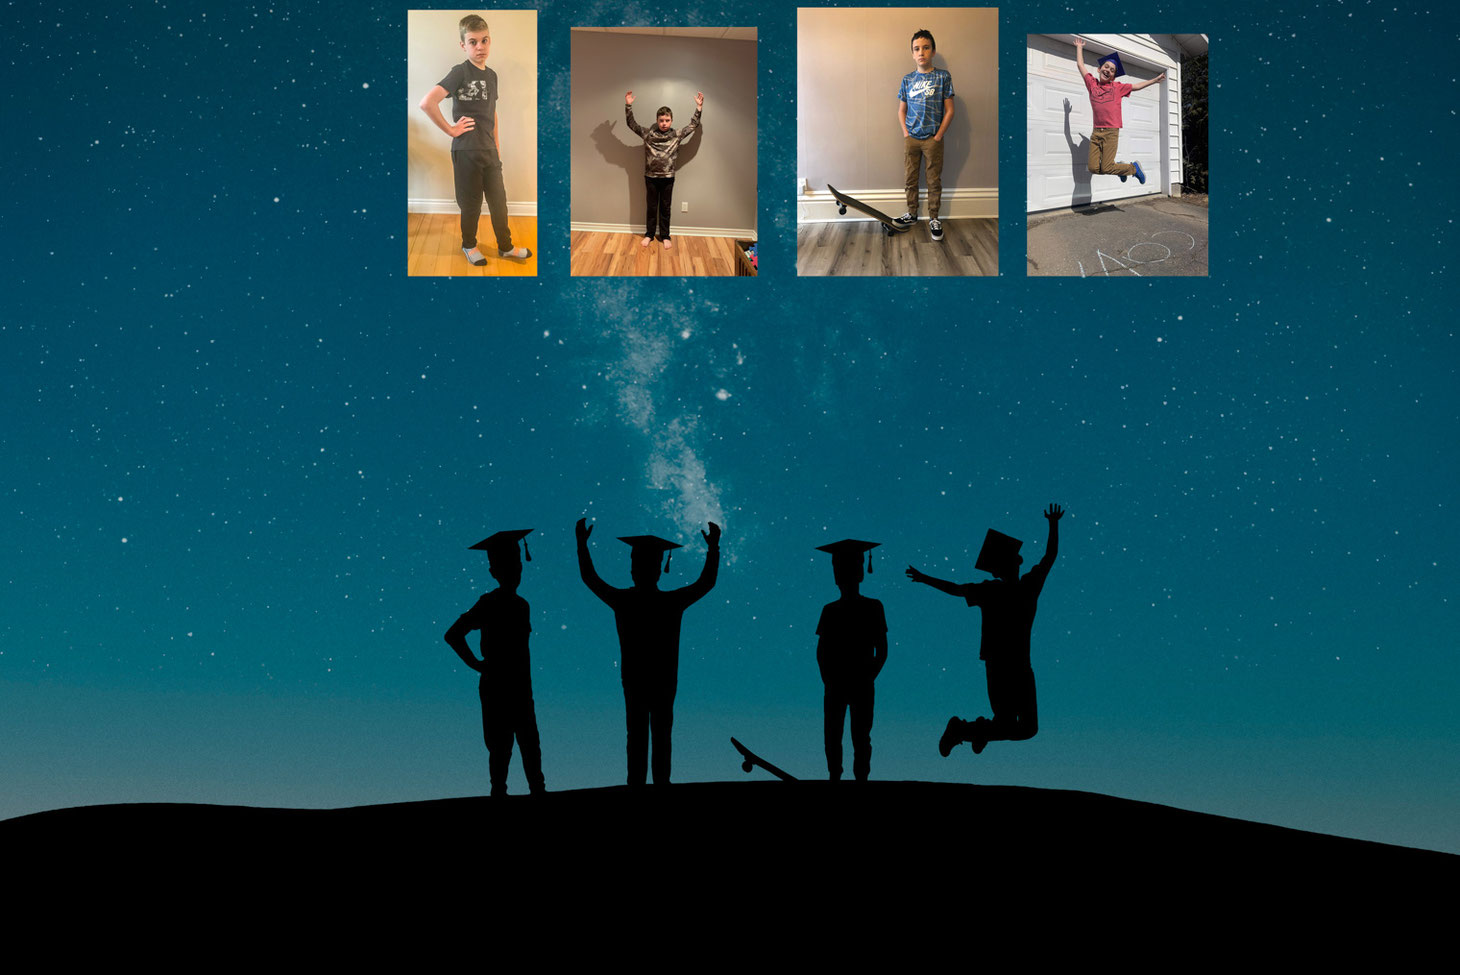 silhouettes of 4 boys in graduation caps against a teal sky with the milky way